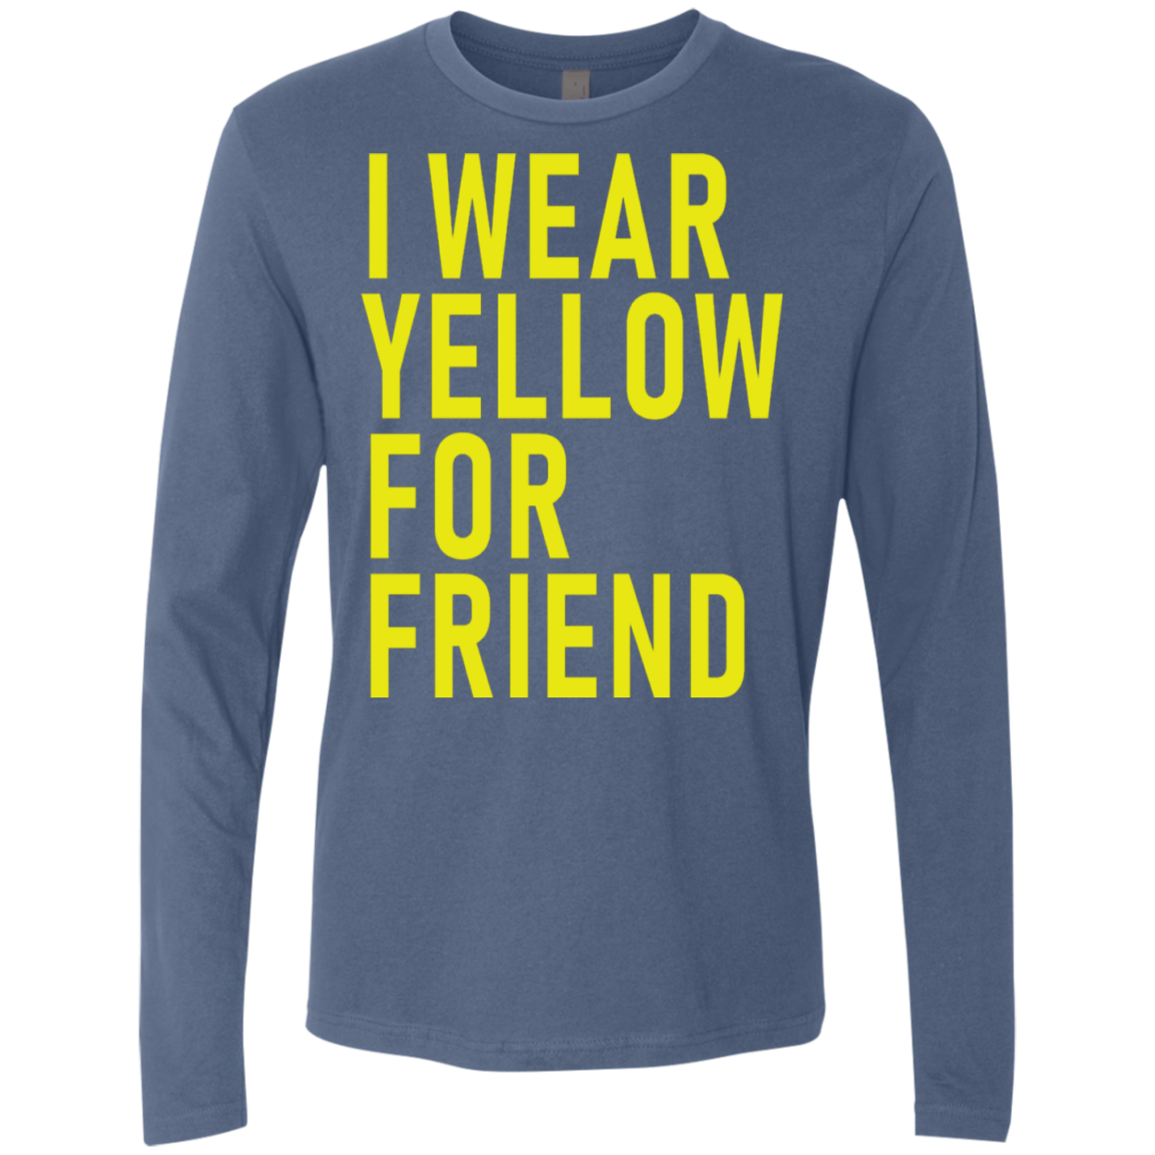 I Wear Yellow For Friend Men's Long Sleeve Tee